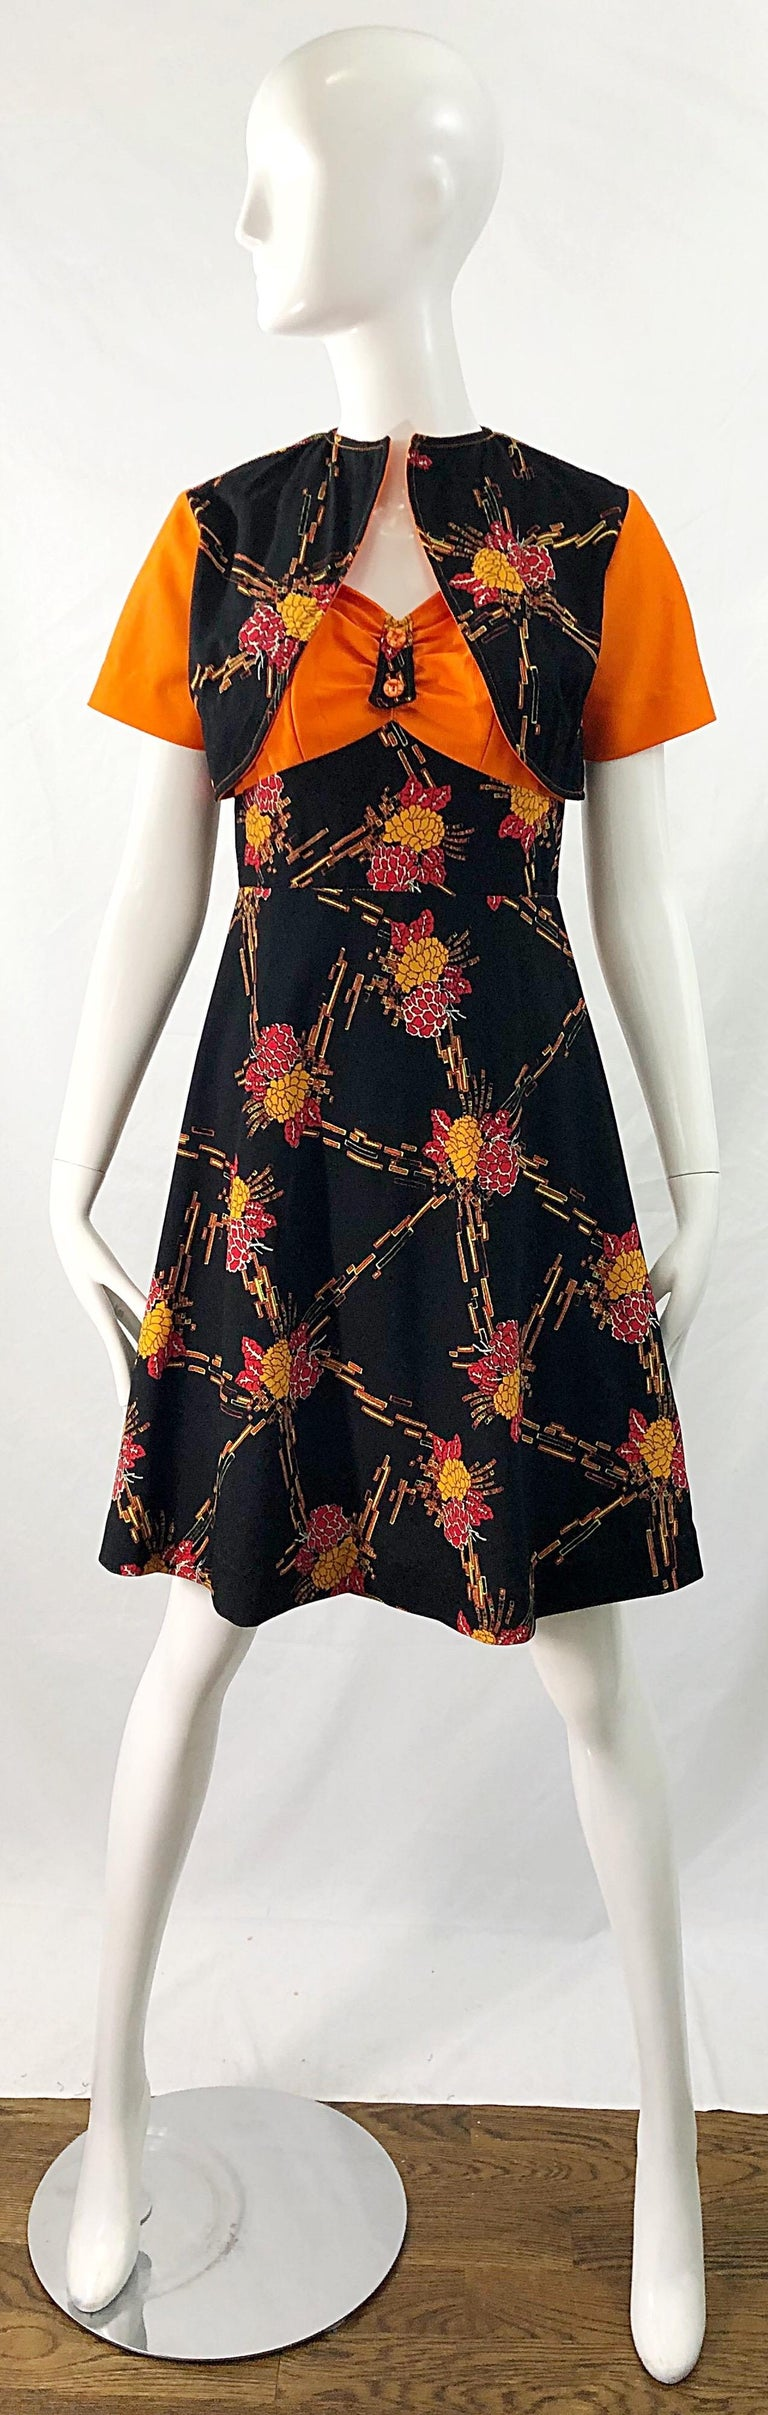 Chic 1970s autumnal colored digital flower printed knit A-Line dress and cropped bolero jacket ! Perfect for Halloween ! Warm vibrant colors of orange, marigold, red and white on a black backdrop. Hidden zipper up the back with hook-and-eye closure.